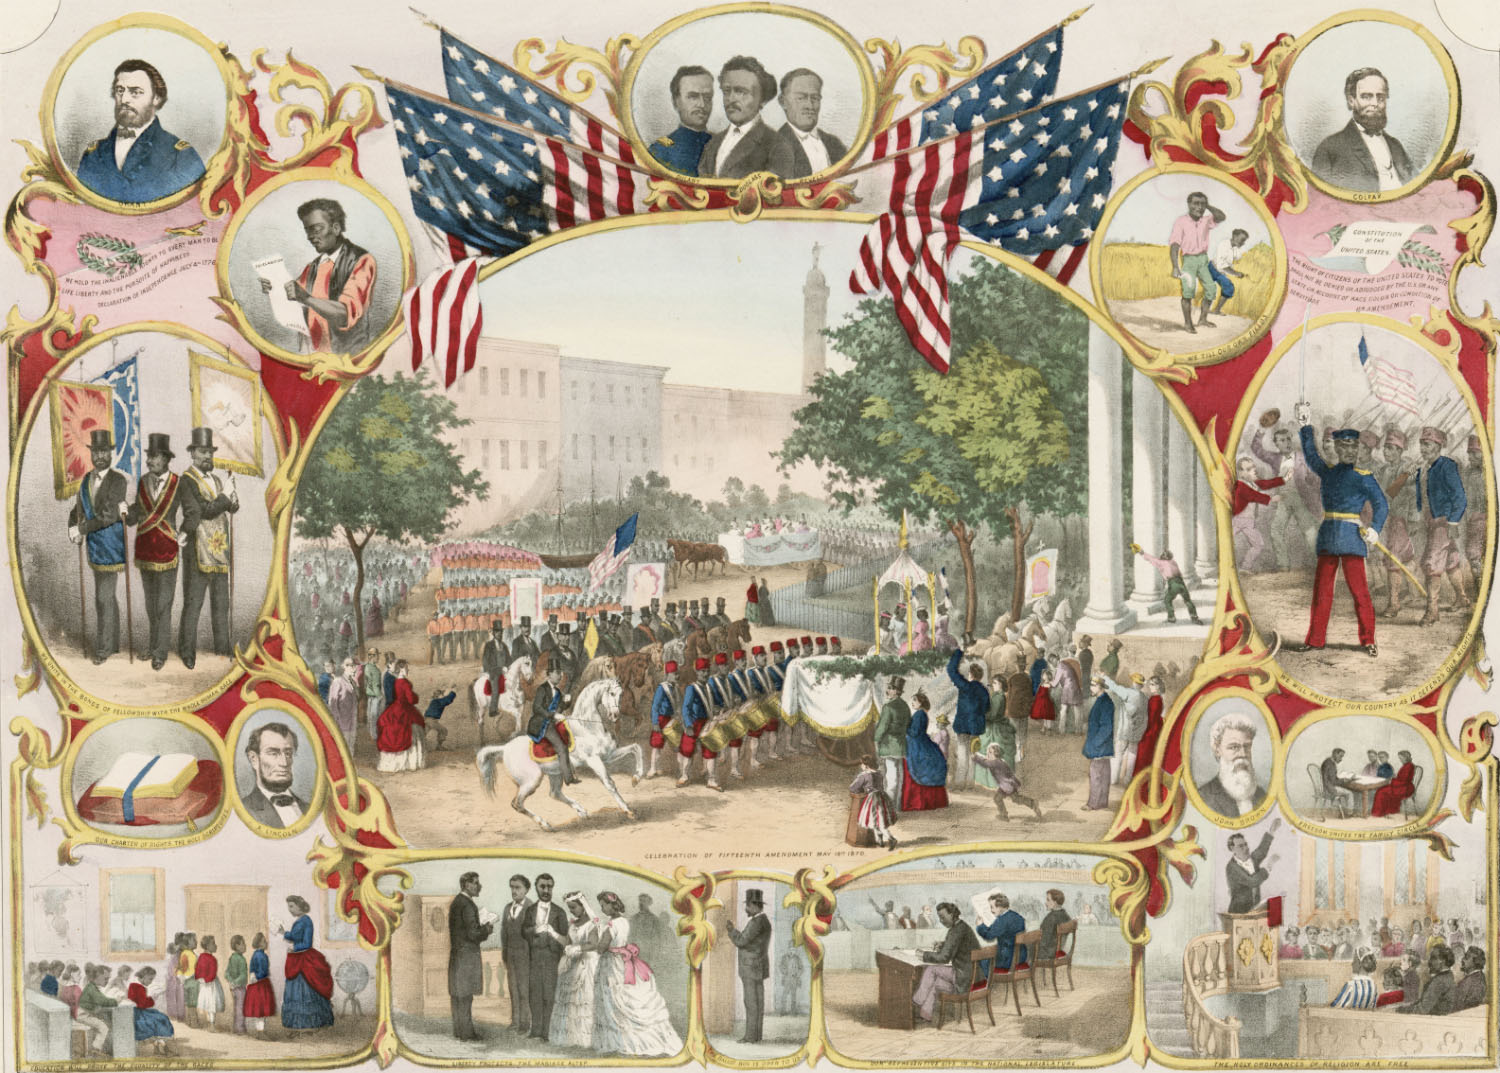 Photo: The Fifteenth Amendment. Celebrated May 19, 1870. Pub. by Thomas Kelly, New York, c. 1871, showing the grand celebratory parade in Baltimore. A similar parade in New York City on April 8, 1870 drew over 1,500 spectators and over 7,000 participants. Library of Congress, Prints & Photographs Division, LC-DIG-pga-01767